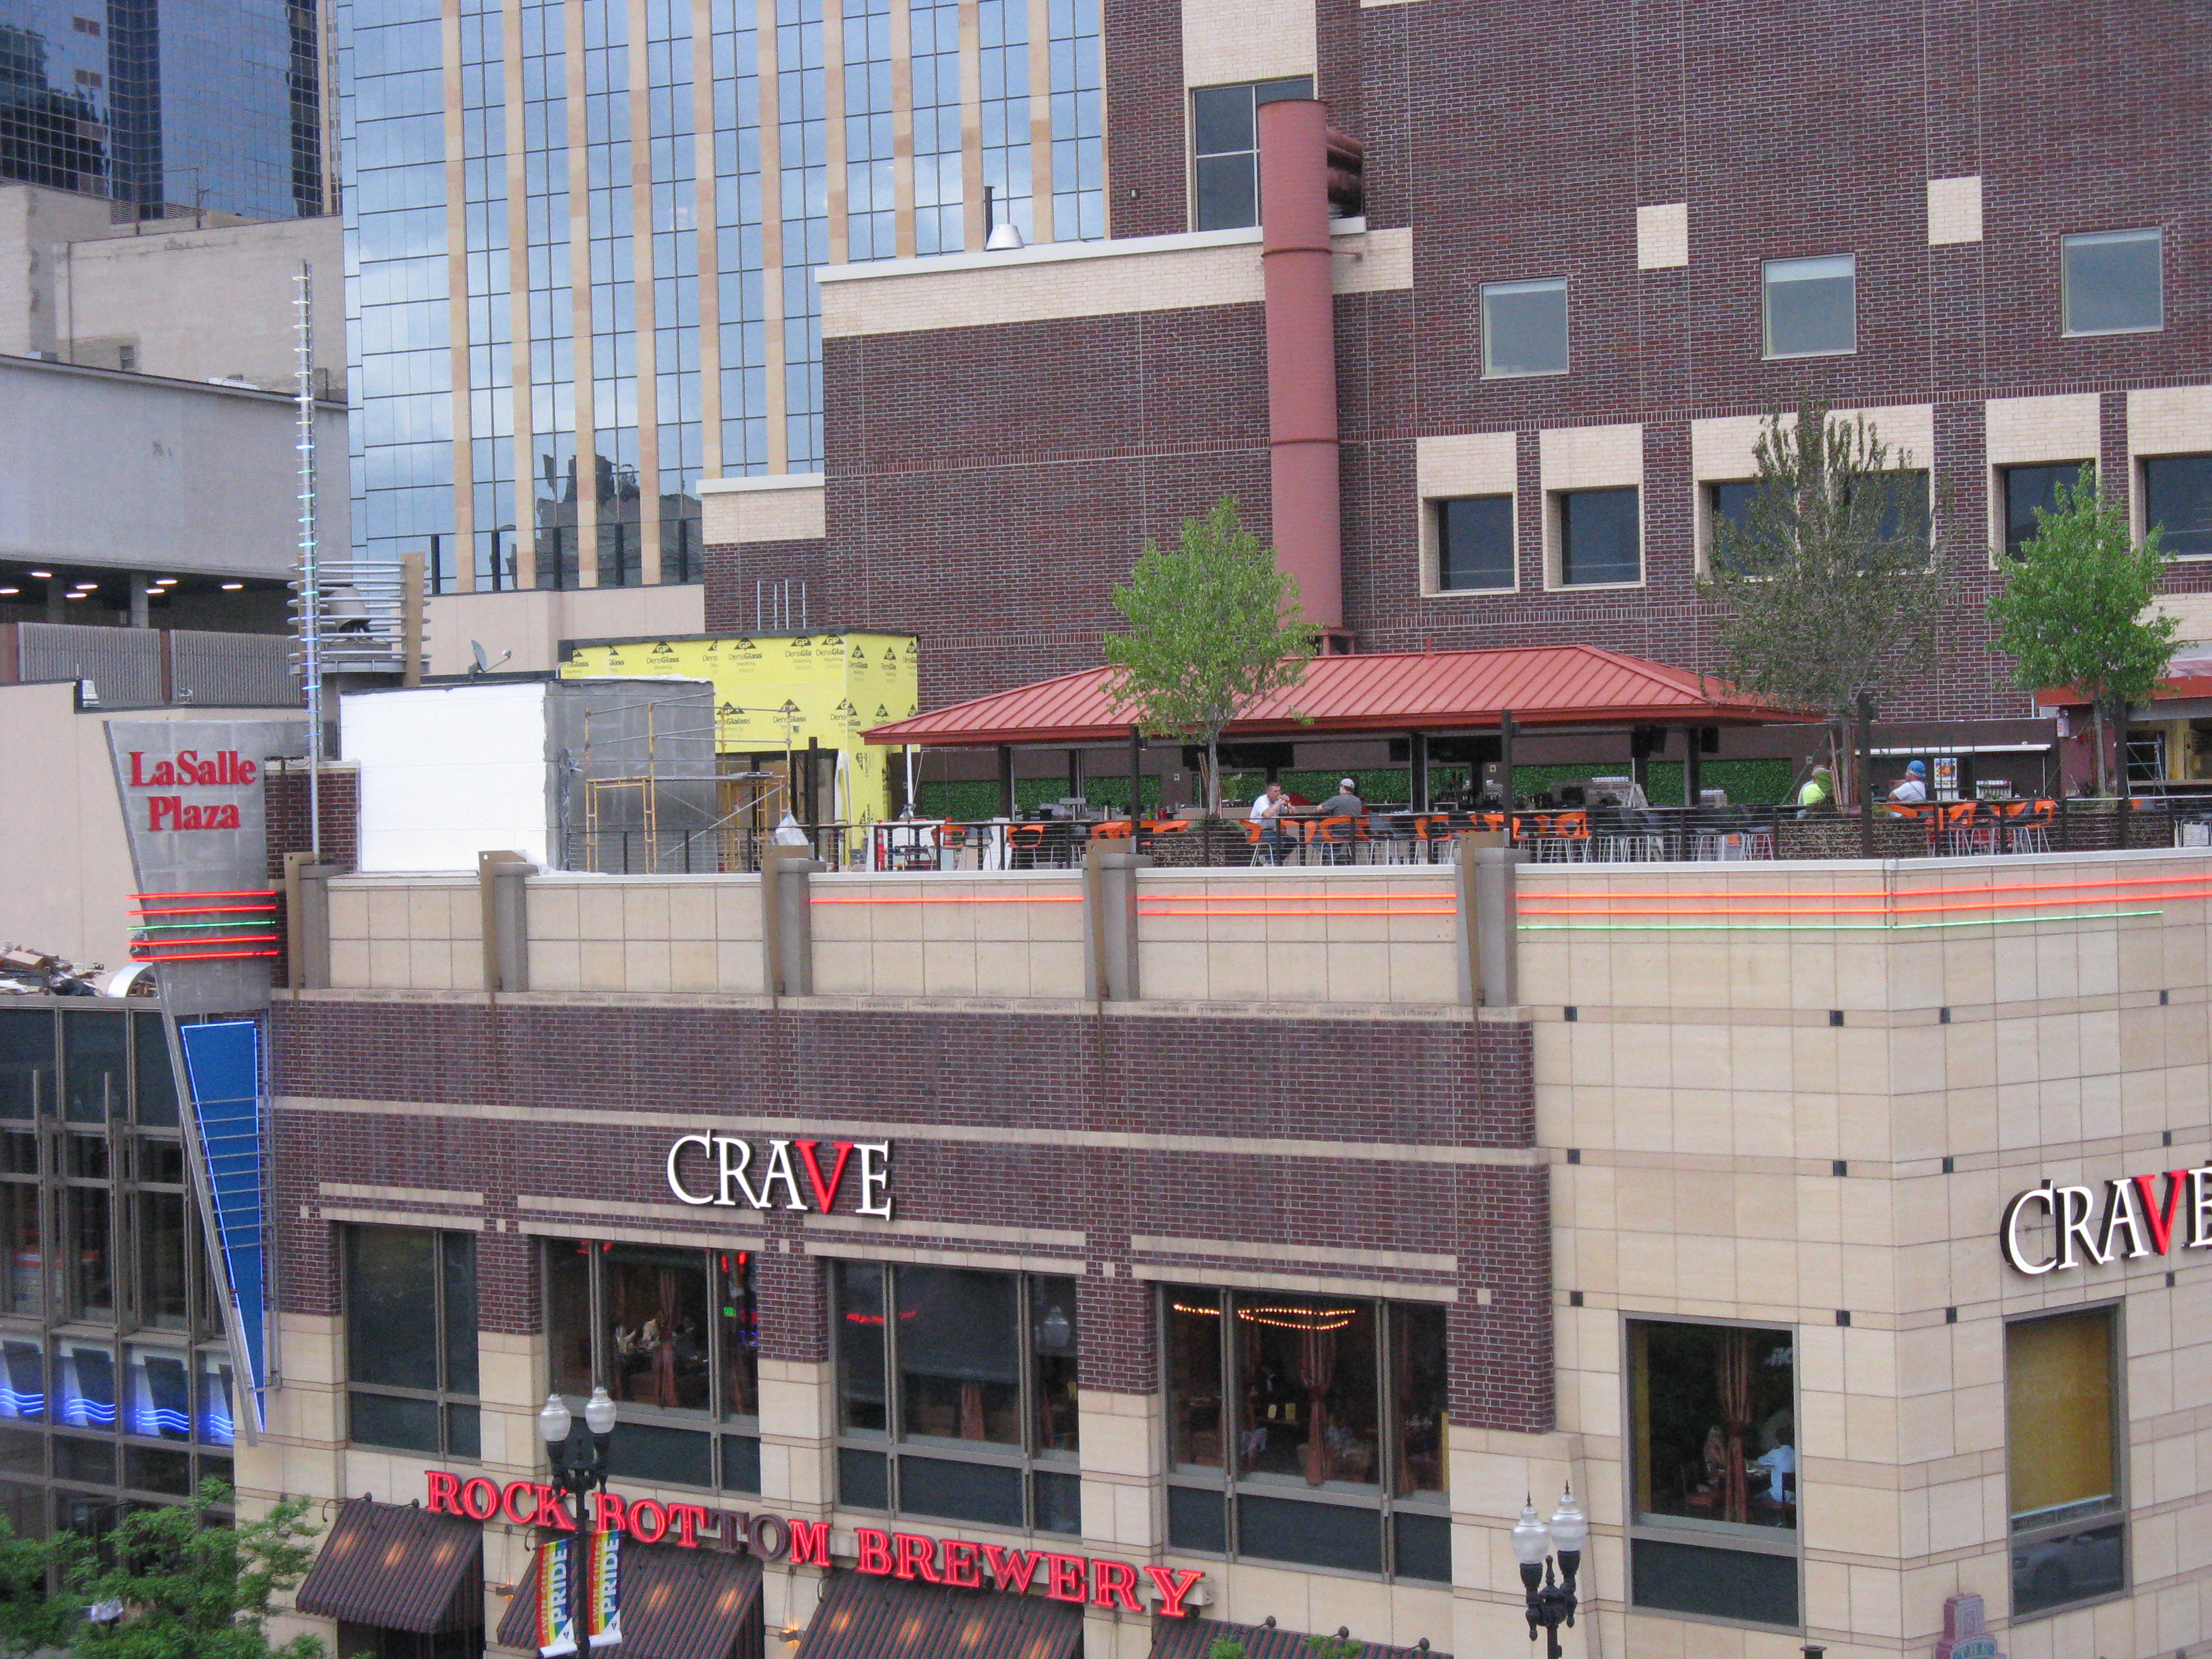 Restaurant Review Crave Minneapolis Minn Kel 39 S Cafe Of All Things